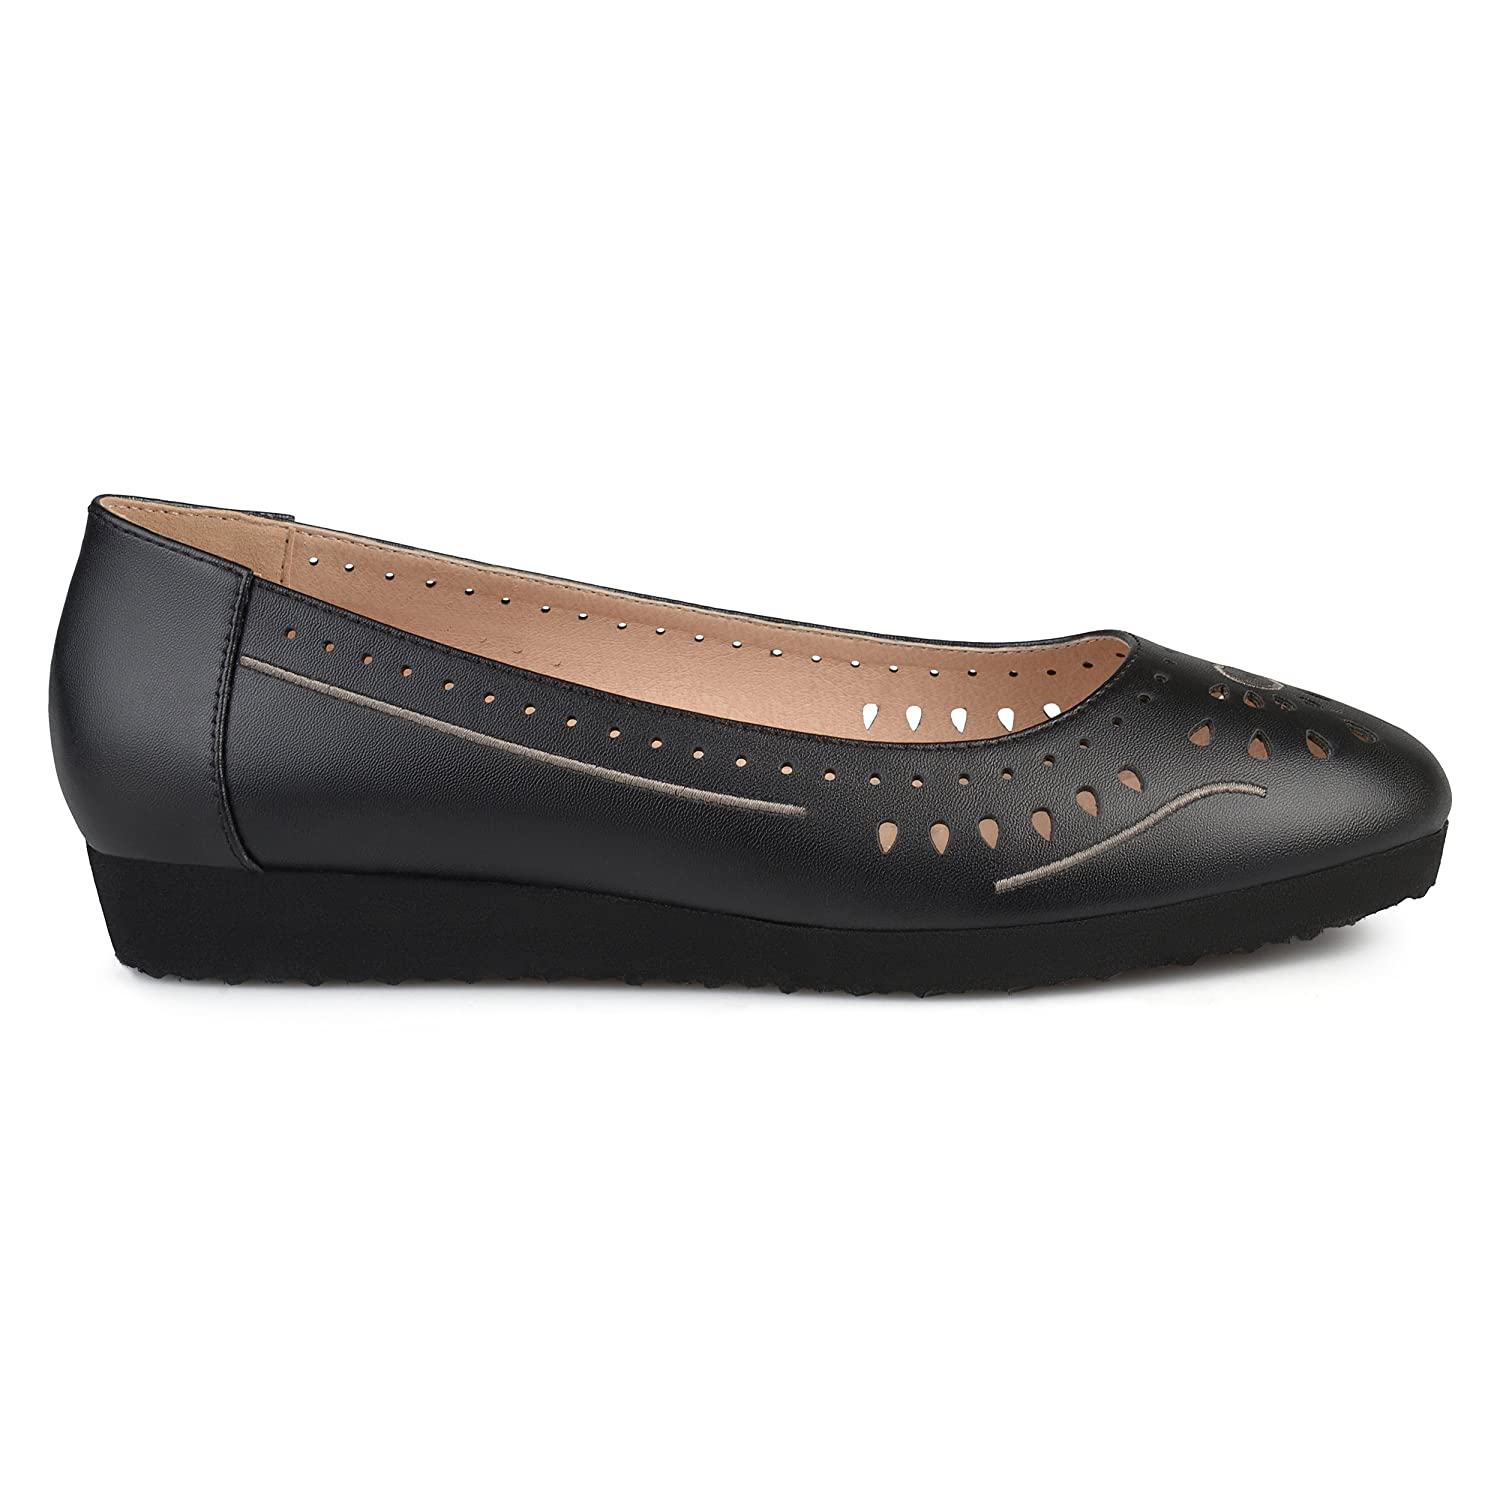 Brinley Co Womens Cyra Faux Leather Laser-Cut Comfort-Sole Embroidered Lightweight Flats B07572YV9S 9 B(M) US|Black